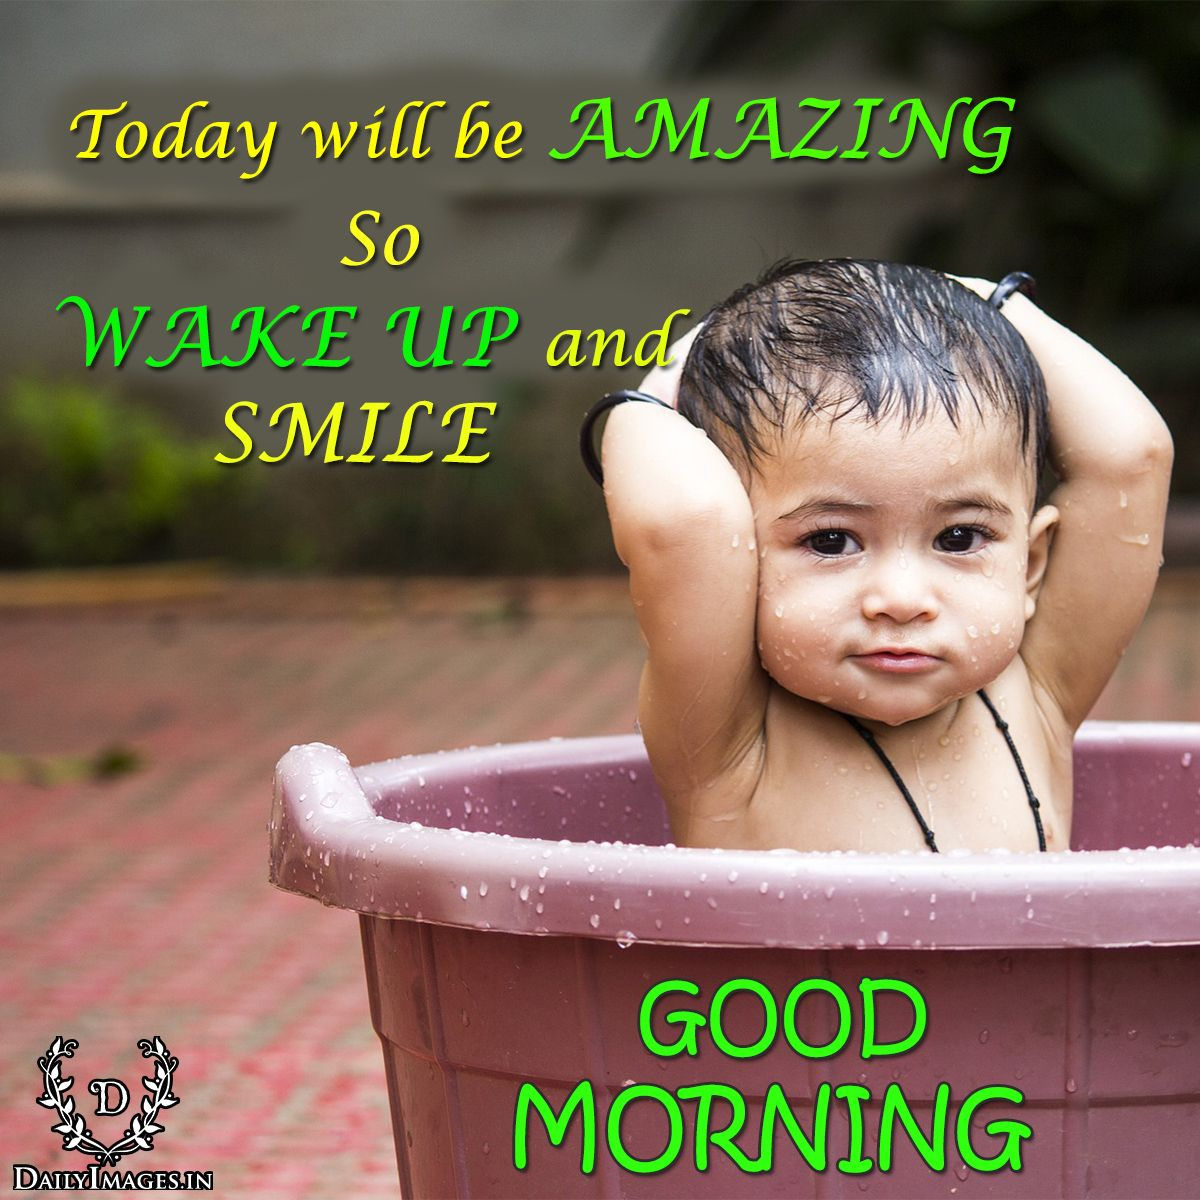 "Refreshing Good Morning Quotes: Today Will Be AMAZING So WAKE UP And SMILE.""GOOD MORNING"